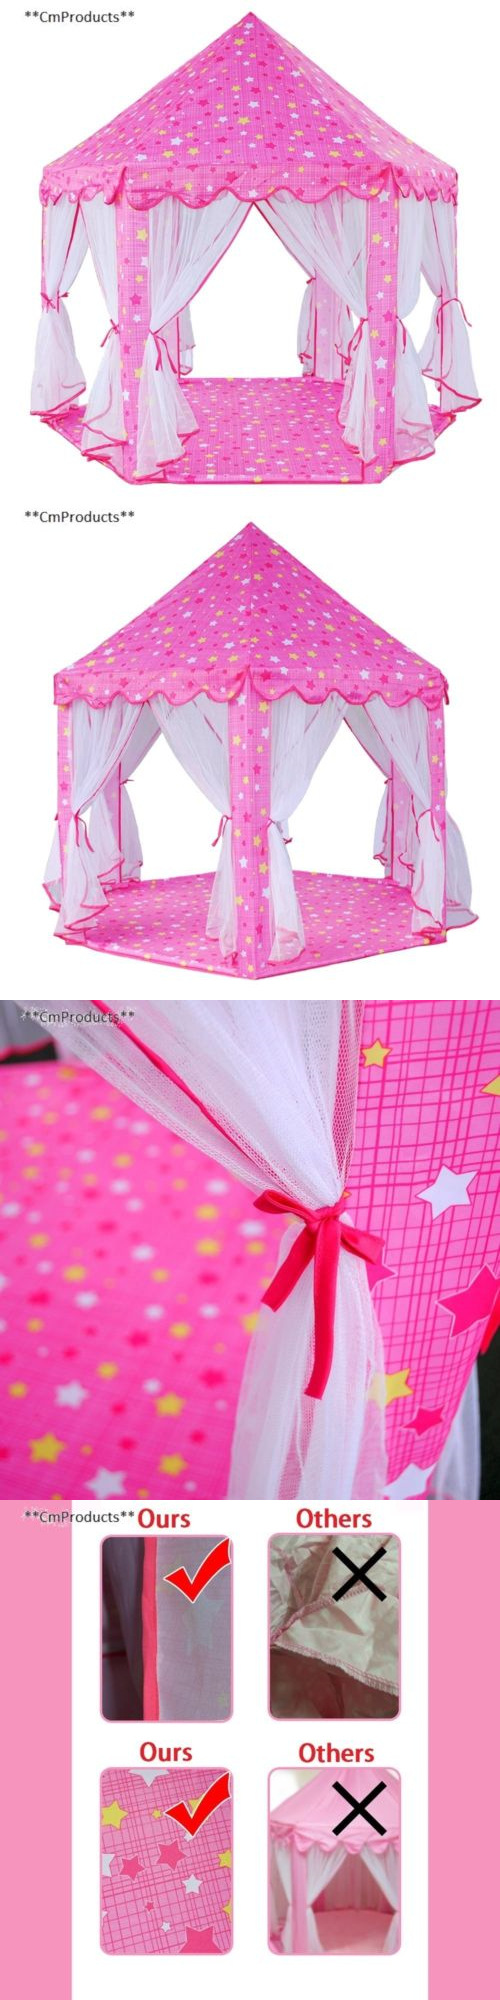 Play Tents 145997 Jacone Girls Pink Princess Castle Play Tent Indoor And Outdoor Diy Playhouse & Play Tents 145997: Jacone Girls Pink Princess Castle Play Tent ...